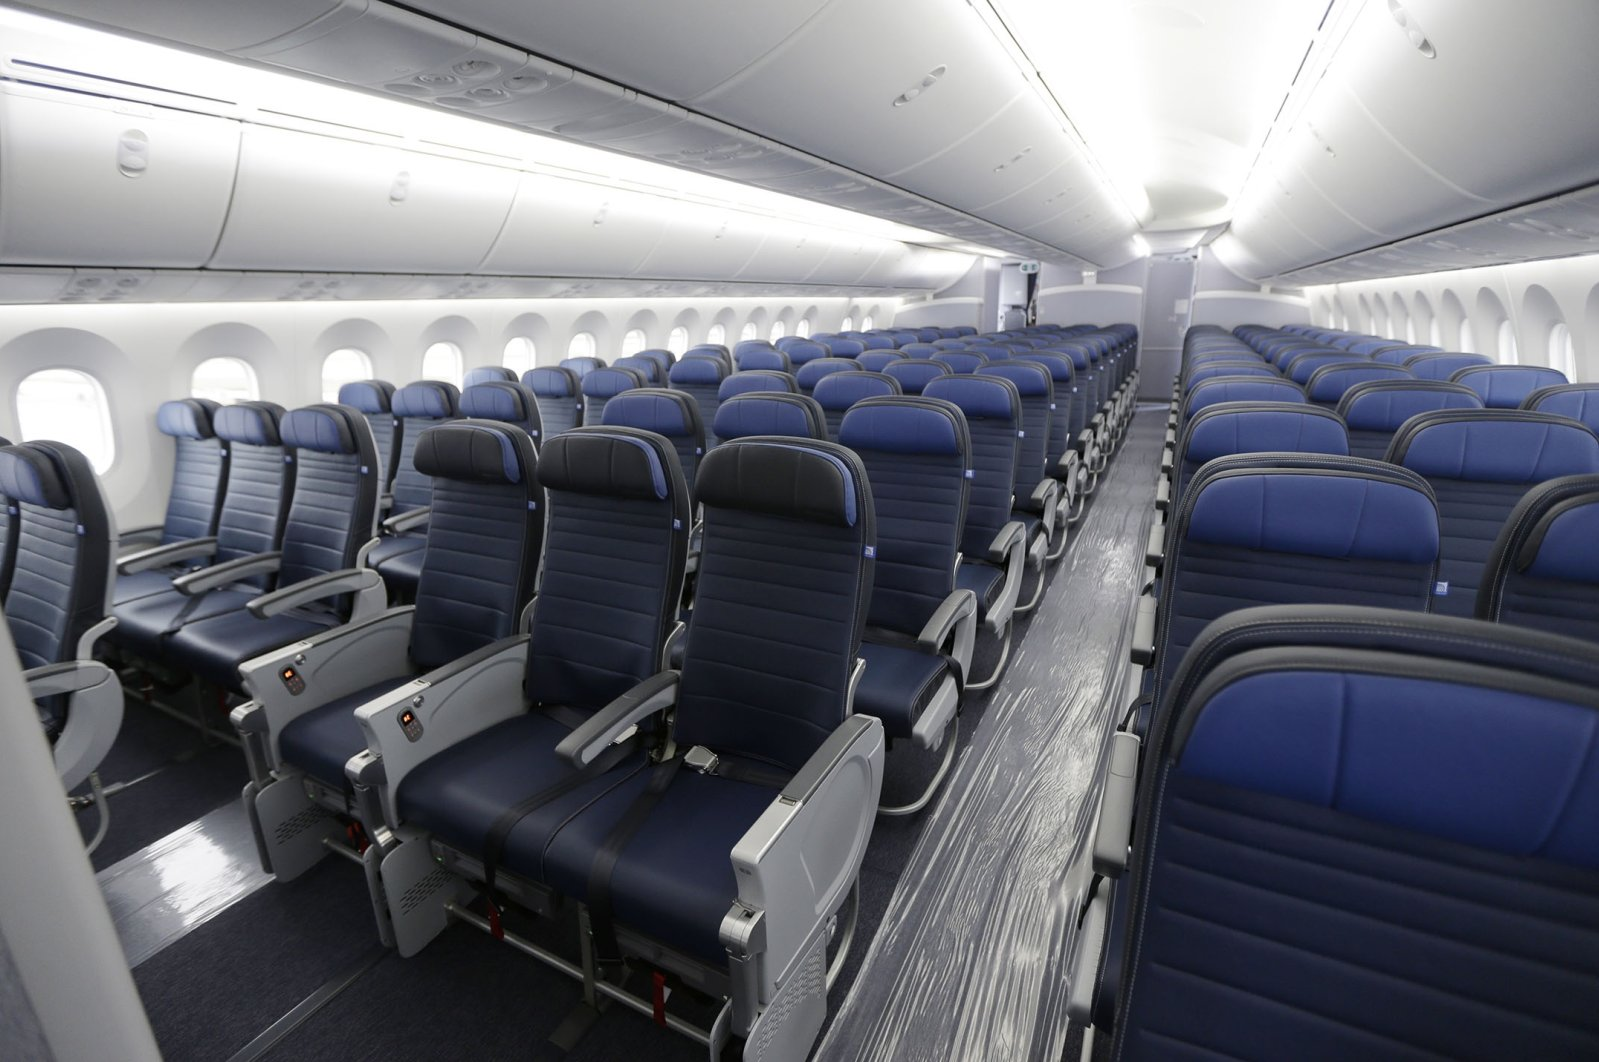 Economy class seating on a new United Airlines Boeing 787-9 undergoing final configuration and maintenance work at Seattle-Tacoma International Airport in Seattle, Washington, the U.S., Jan. 26, 2016. (AP Photo)